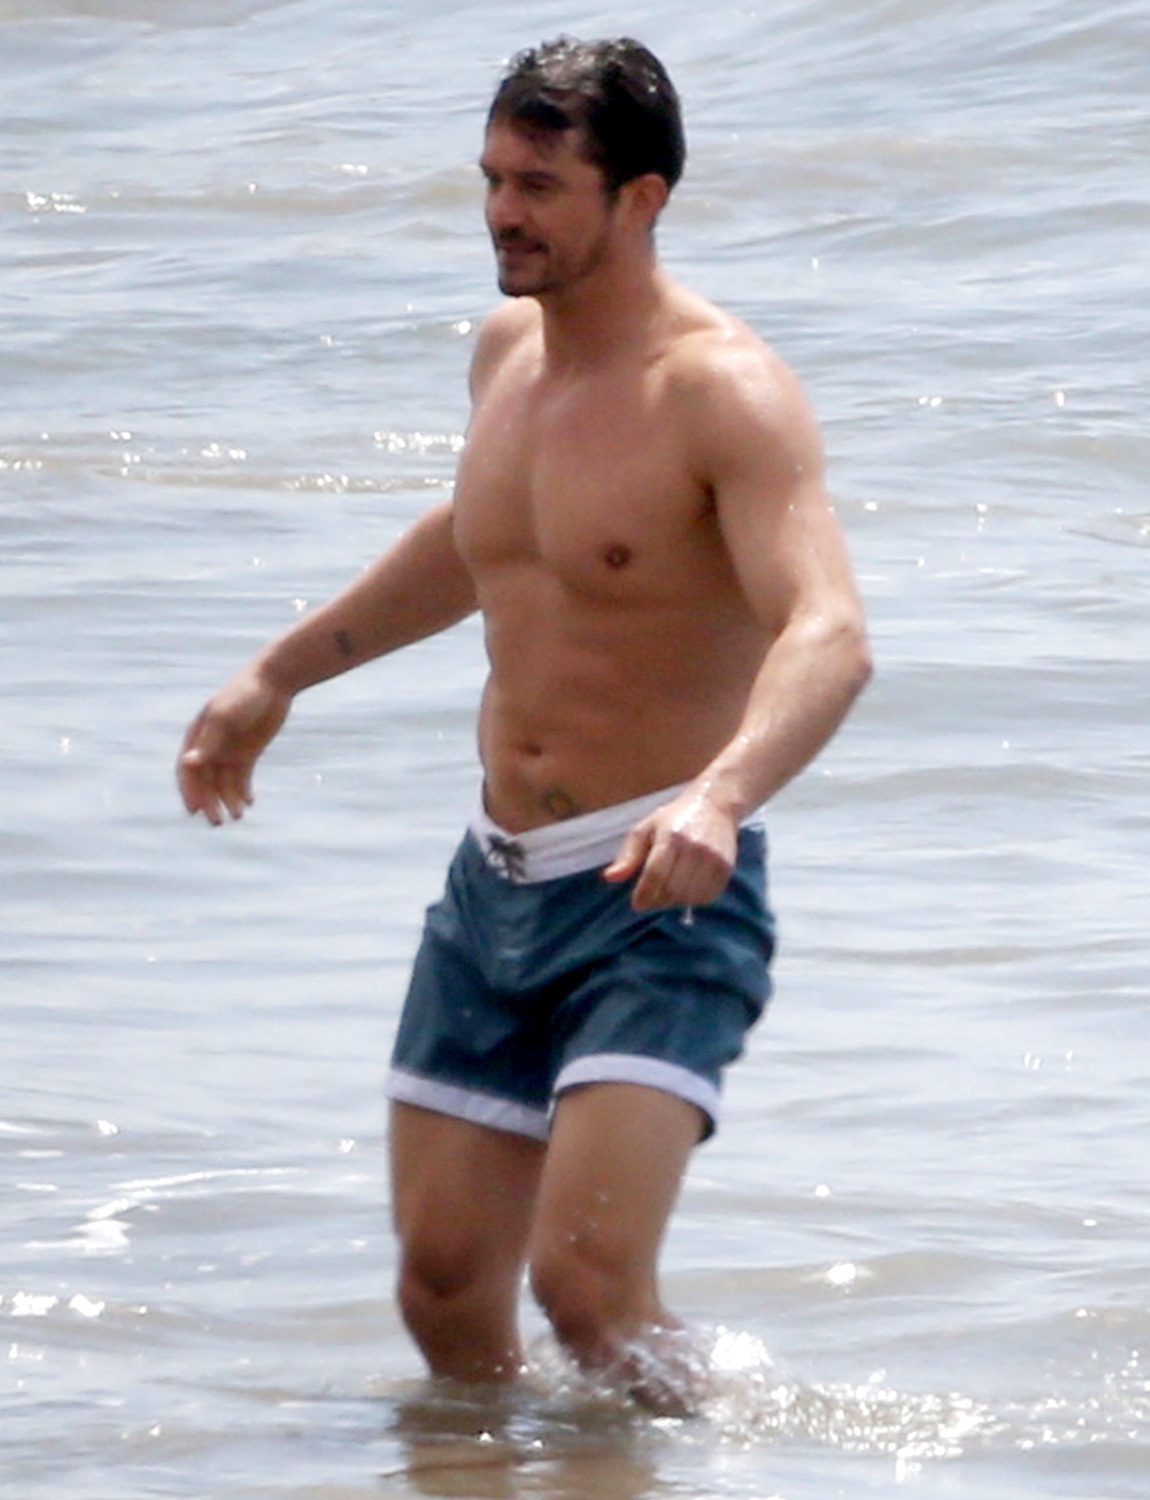 Orlando Bloom Shows Off His Toned Torso As He Takes A Dip